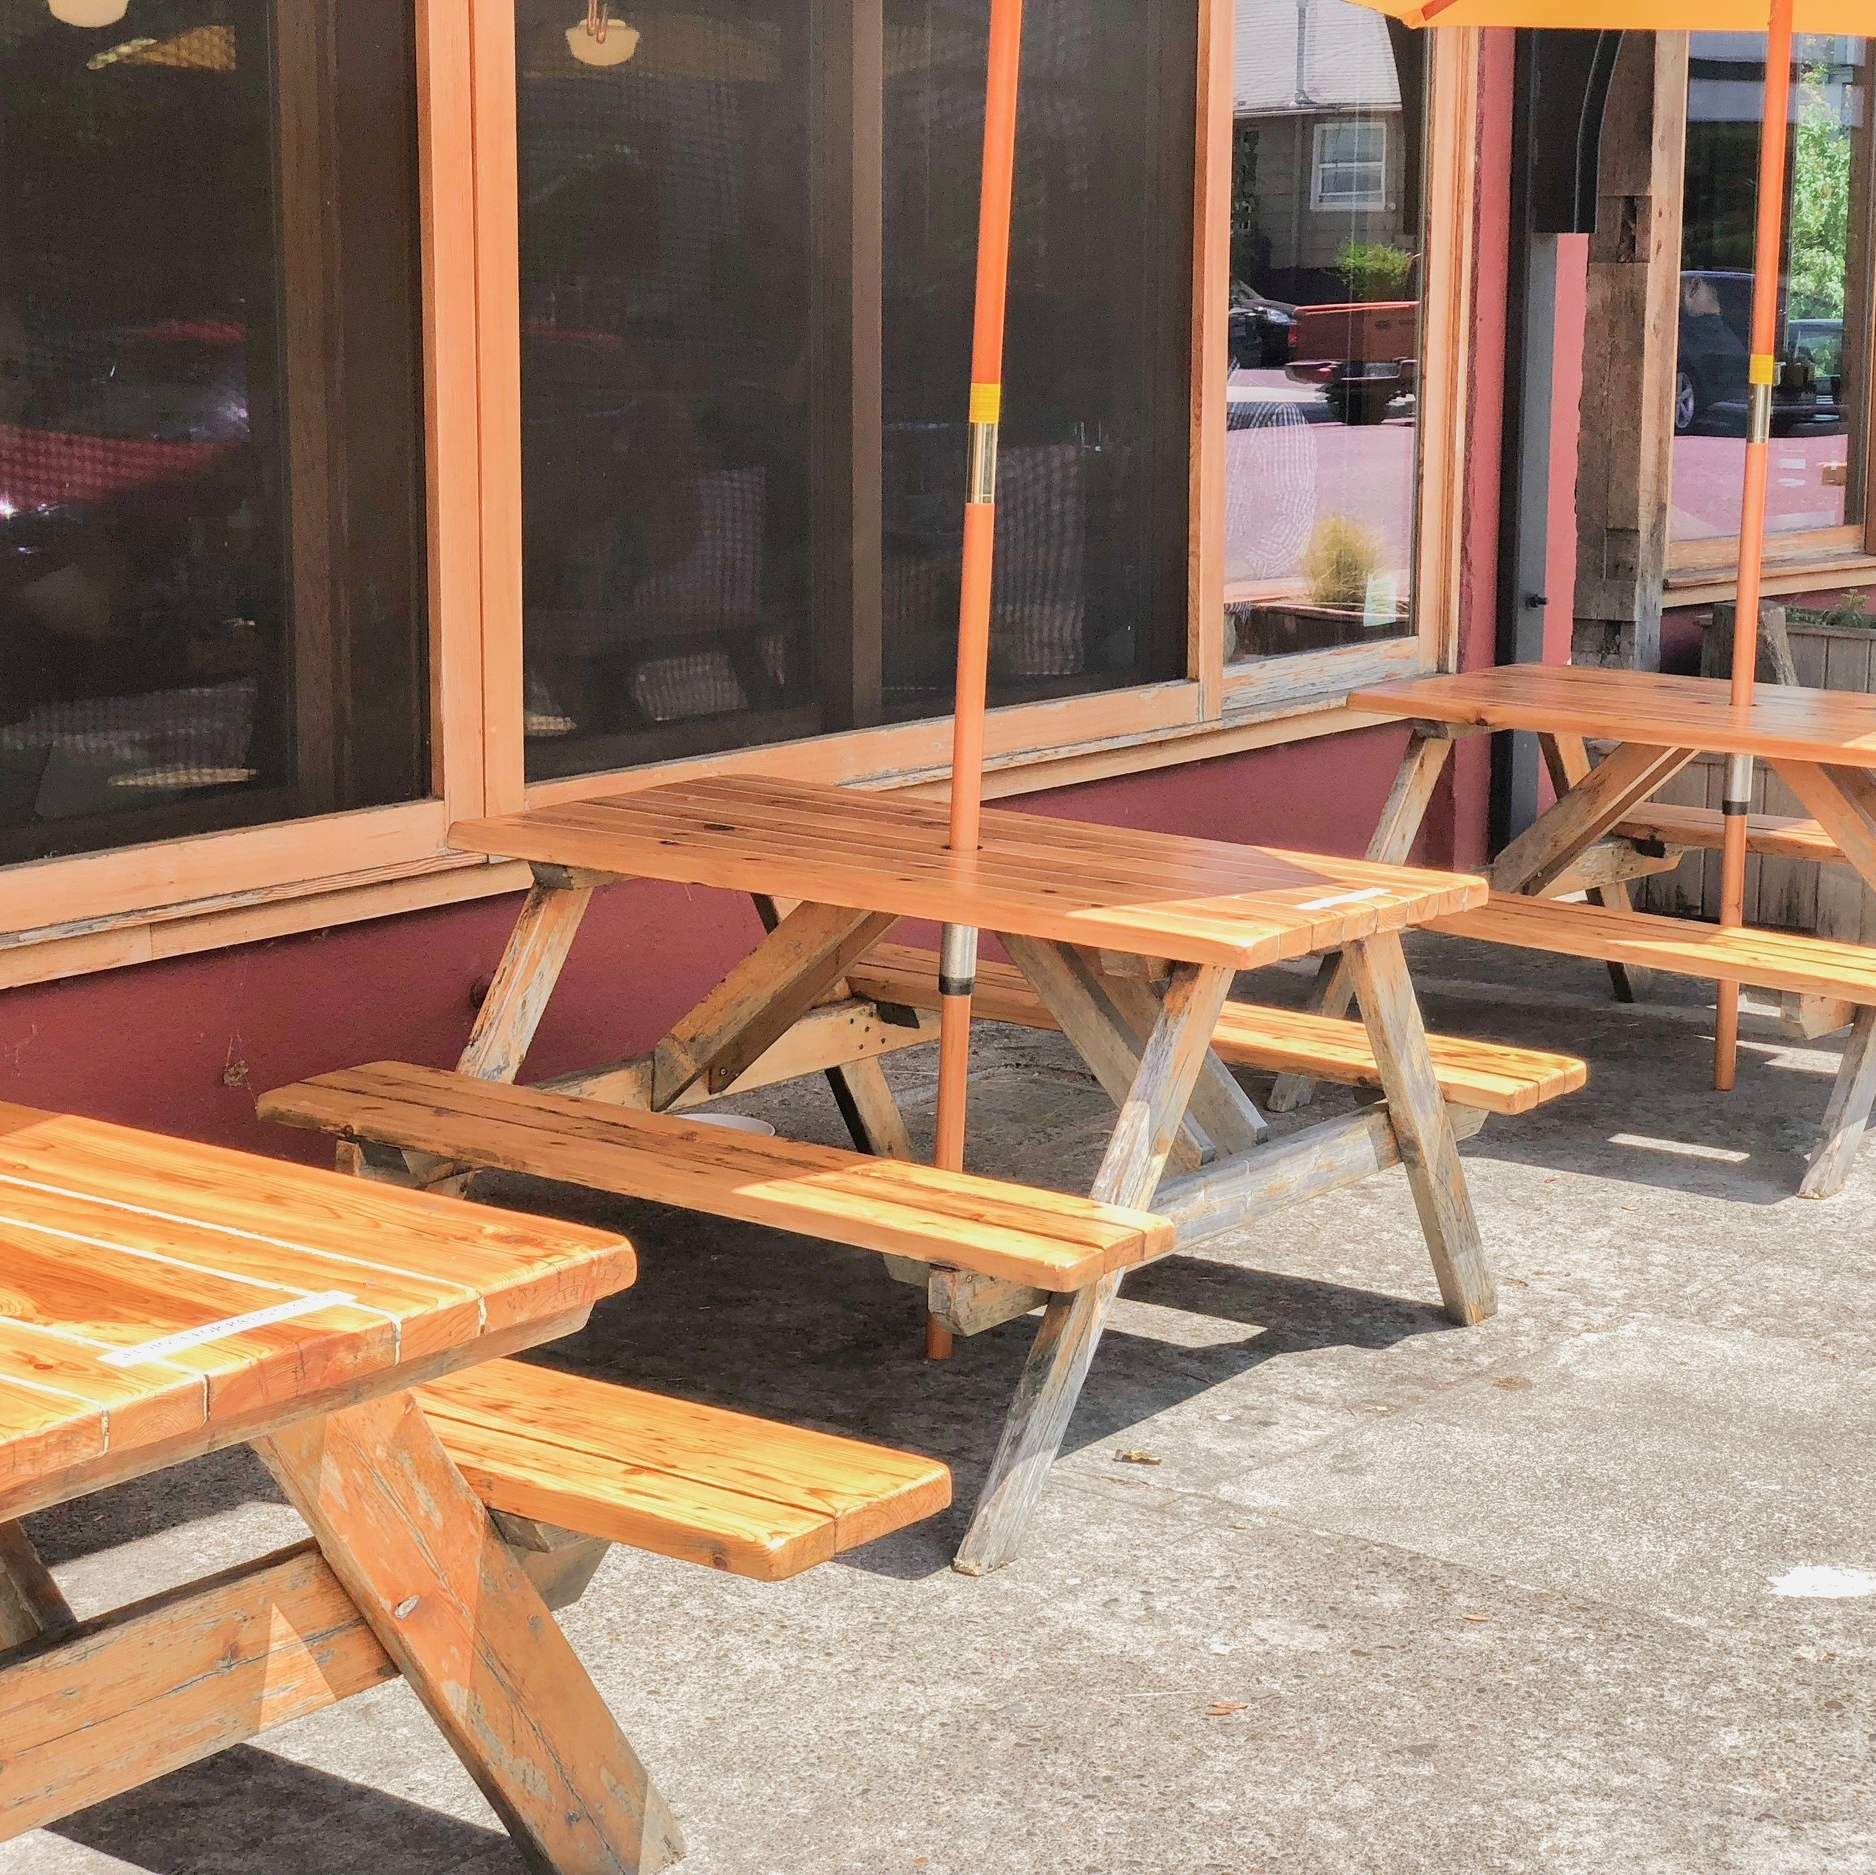 """Outside seating was limited to picnic tables, but the reviewer took care to comment that: """"The picnic tables seemed bigger than most and were nicely shaded."""""""